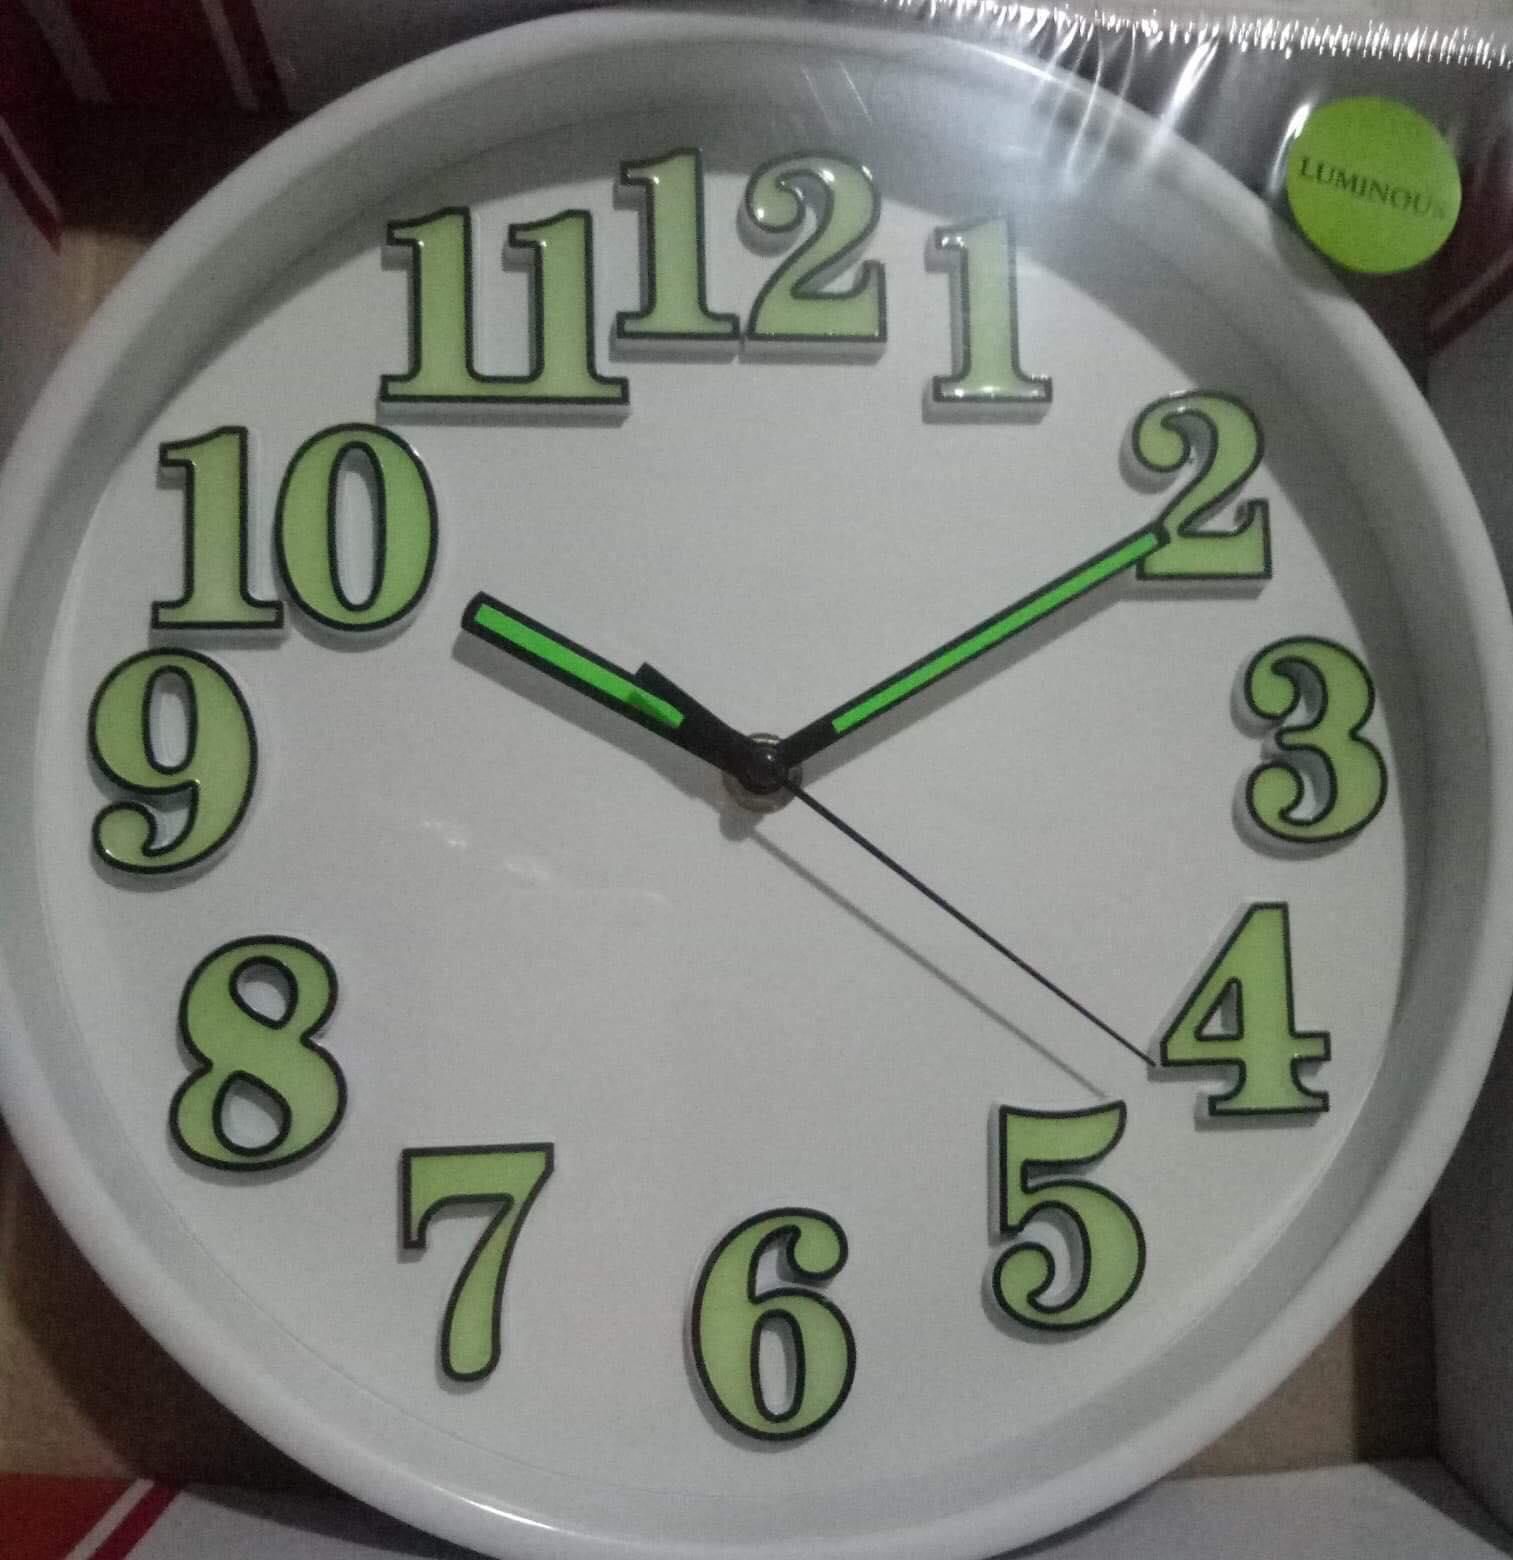 Clock For Sale Large Clocks Prices Brands Review In Philippines Circuit Board Wall From Computer Parts Steampunk Geek Techi Round 25cm Diameter Glow The Dark